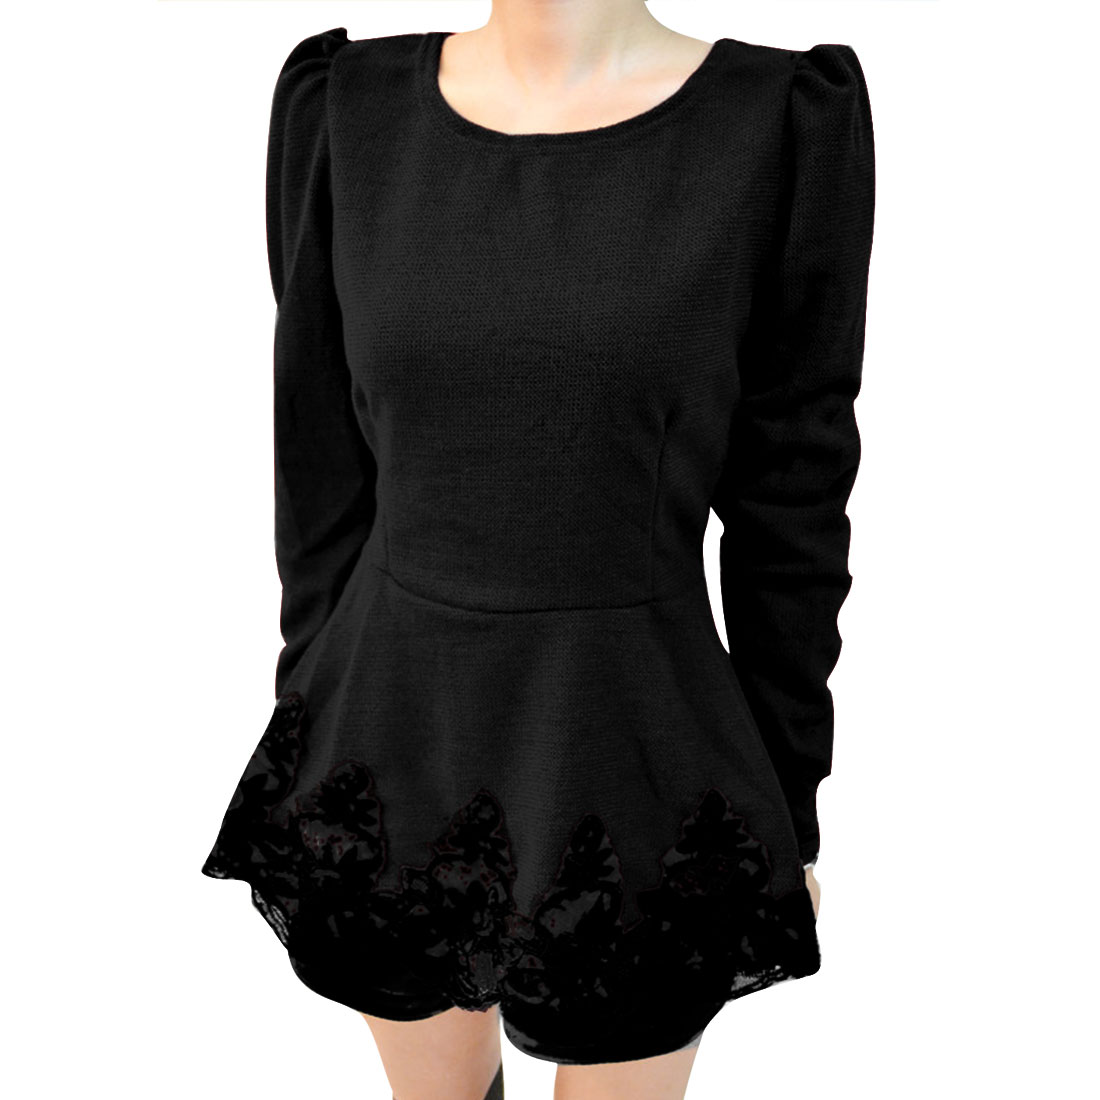 Women Black Round Neck Long Sleeve Crochet Hem Peplum Blouse XS